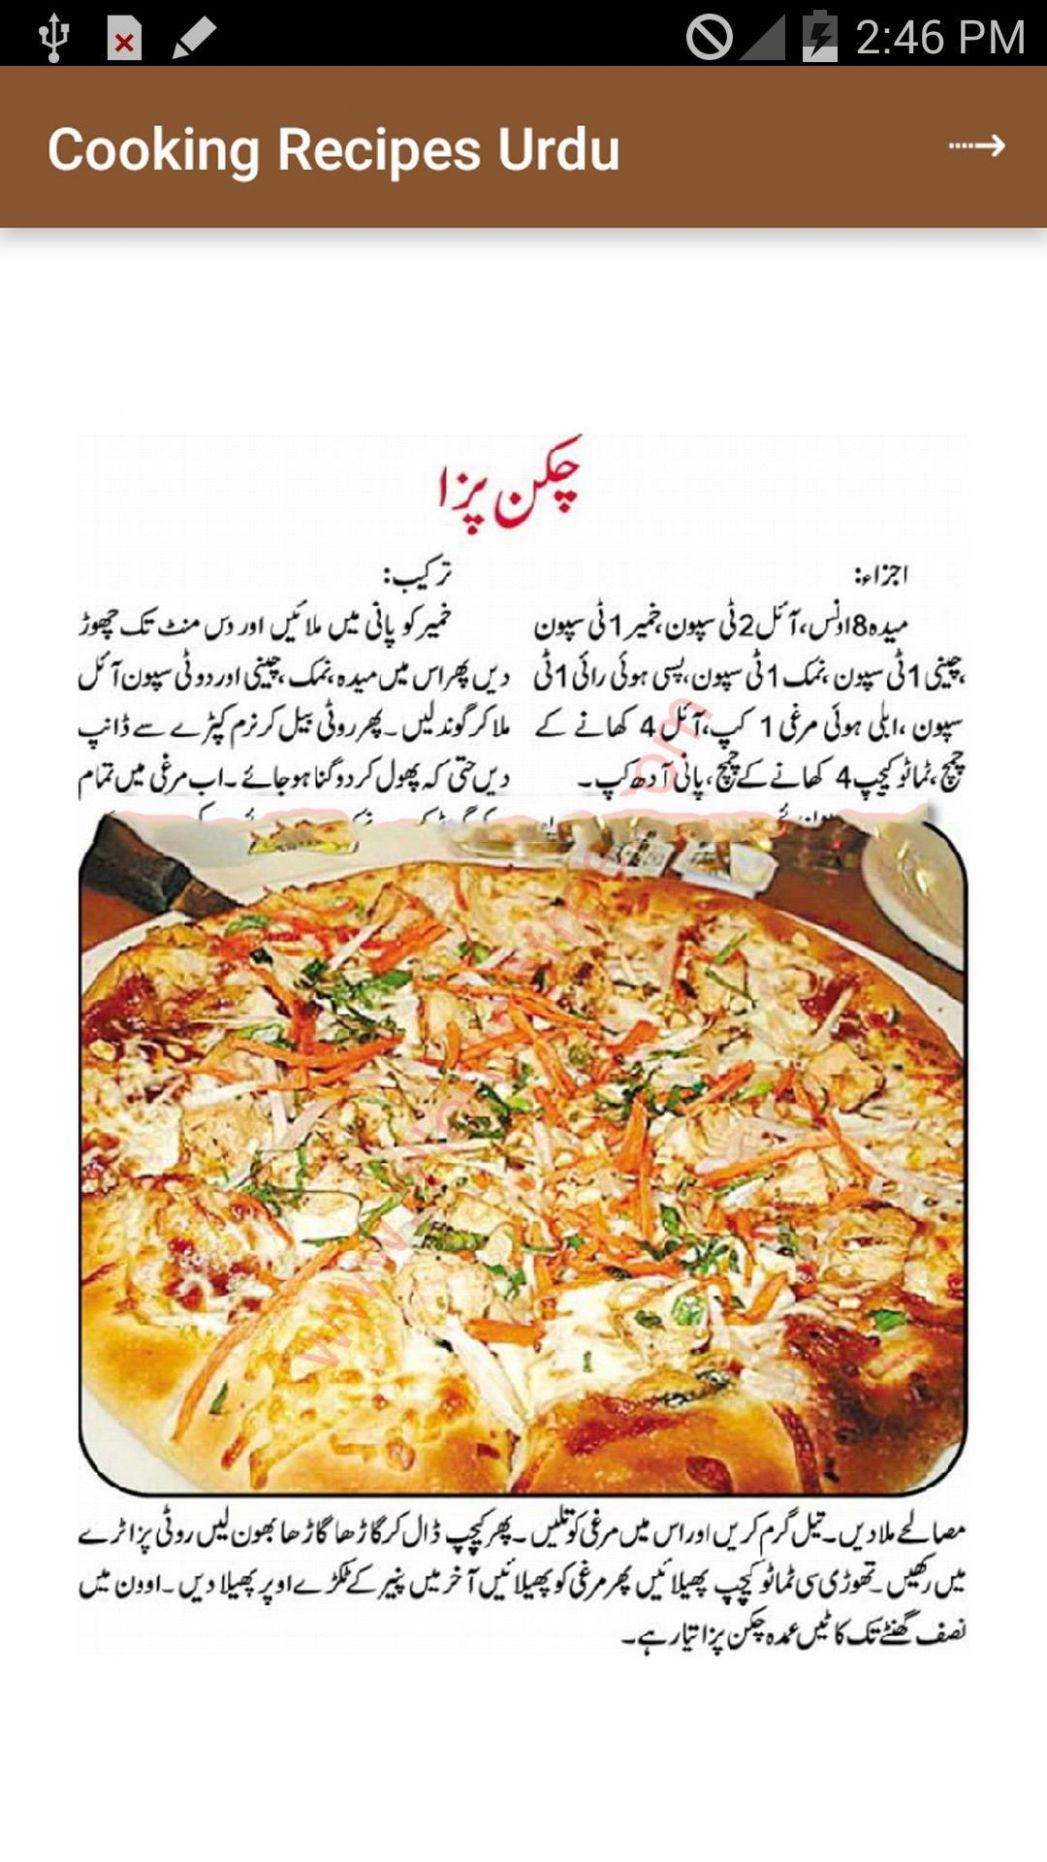 Cooking Recipes in Urdu for Android - APK Download - Cooking Recipes Urdu Language